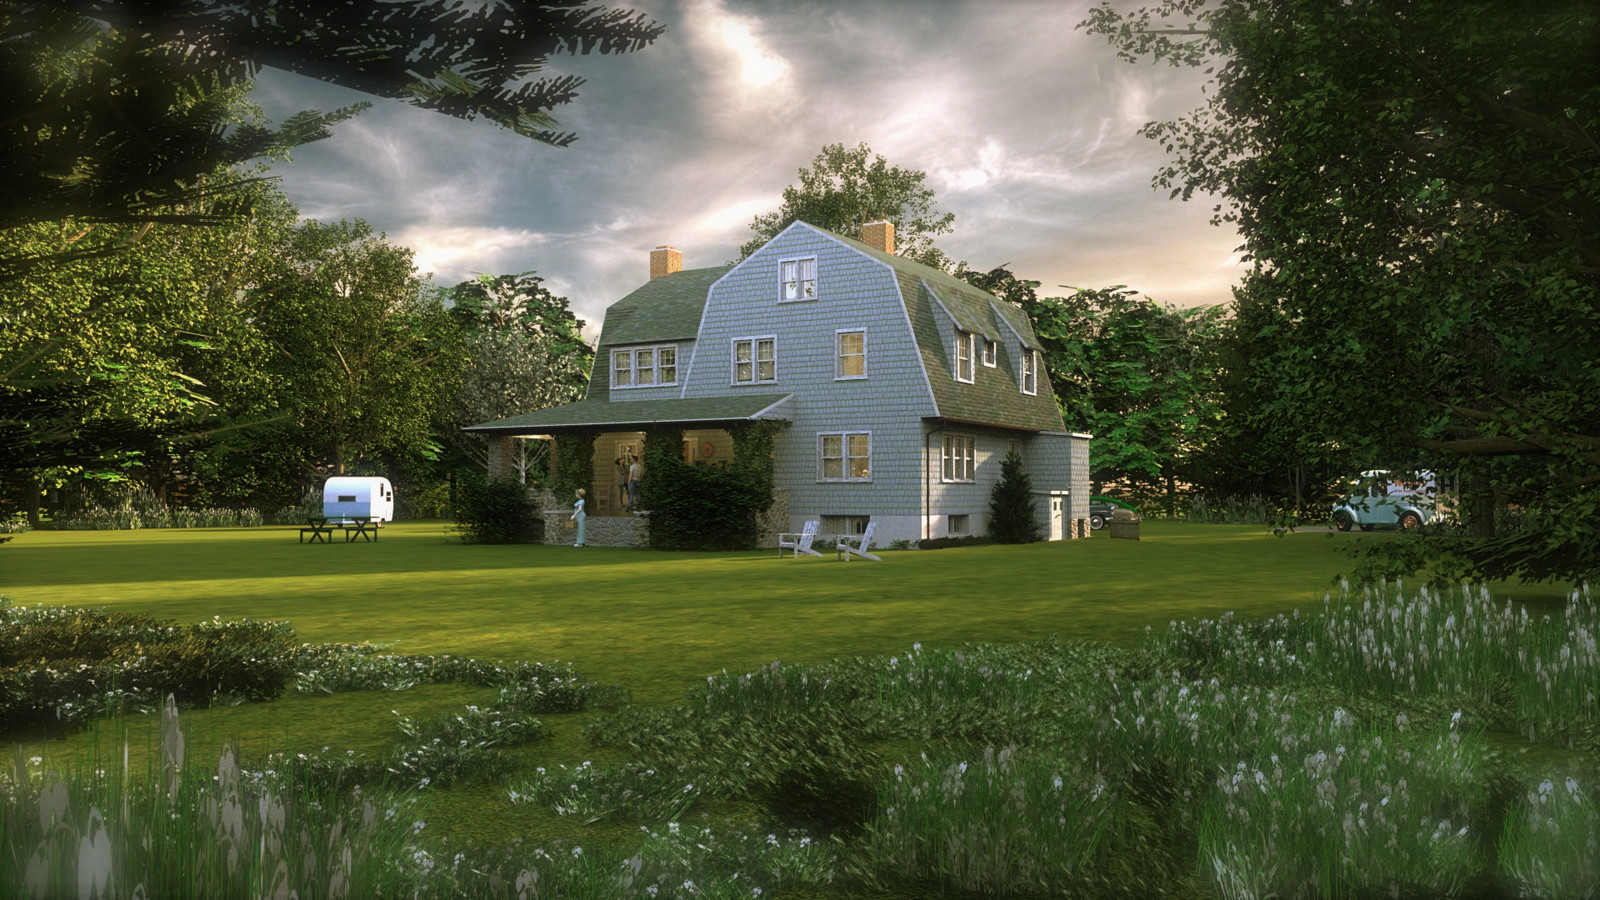 """""""Mason Farm - Homestead's Heart (Day)"""" E Summer Sun Collection  14 Masonfarm HD1080 15e - iP Kodac   """"SketchUp to LayOut"""" The Mason Farm Renders for the launching of the new book """"SketchUp to LayOut"""" http://bit.ly/2j0d0Wh by MasterSketchup."""